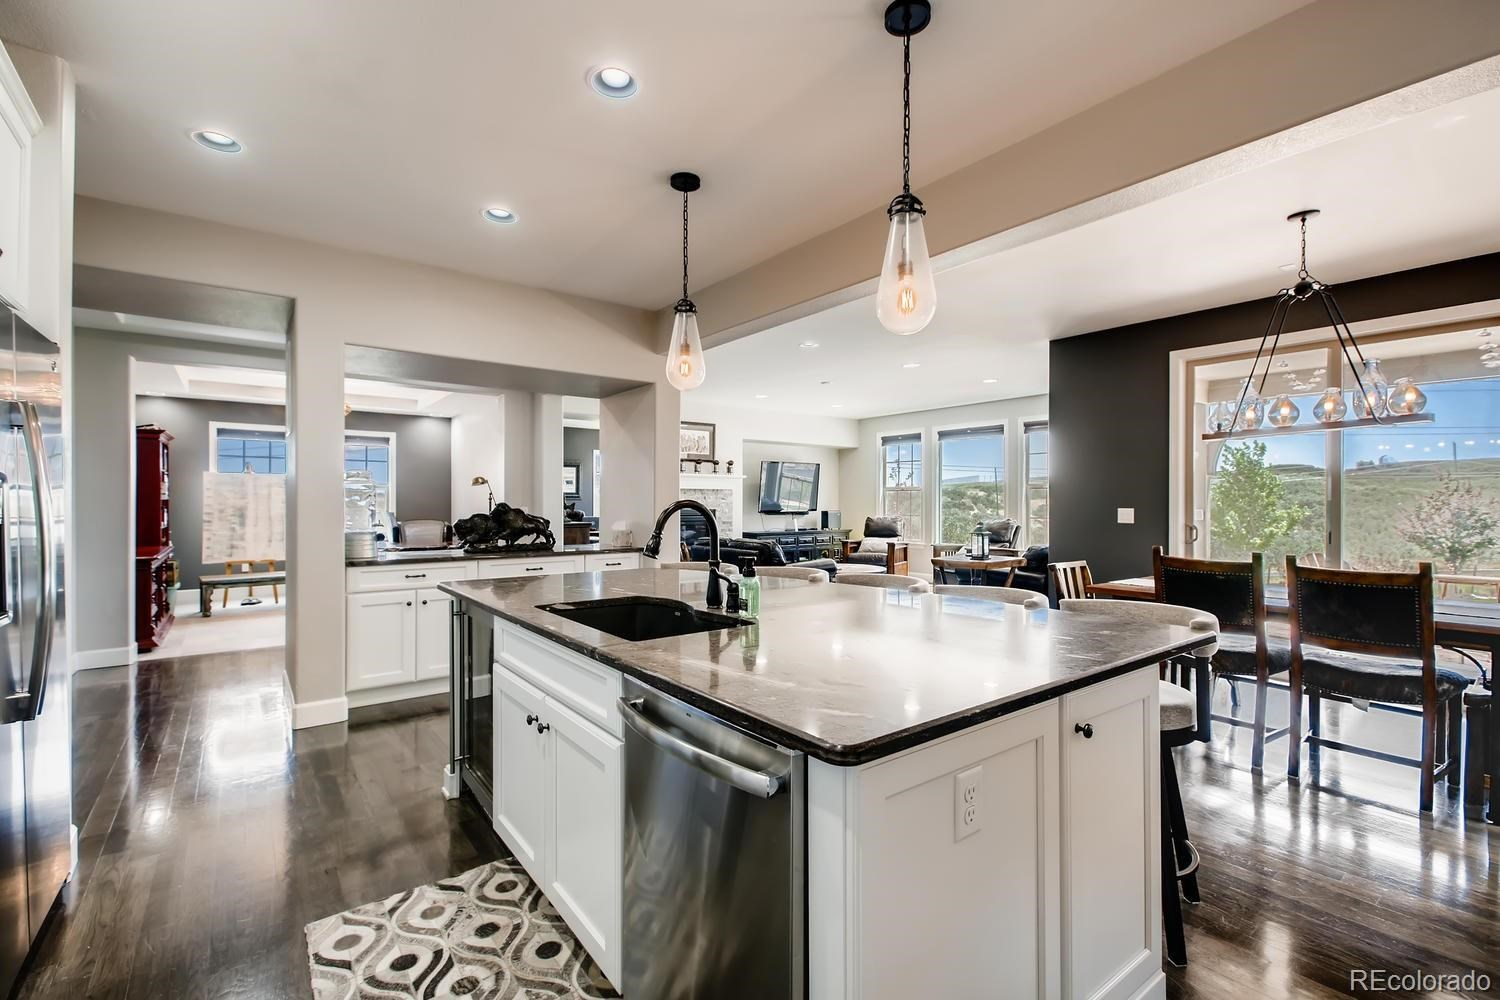 MLS# 5689224 - 9 - 10754 Greycliffe Drive, Highlands Ranch, CO 80126